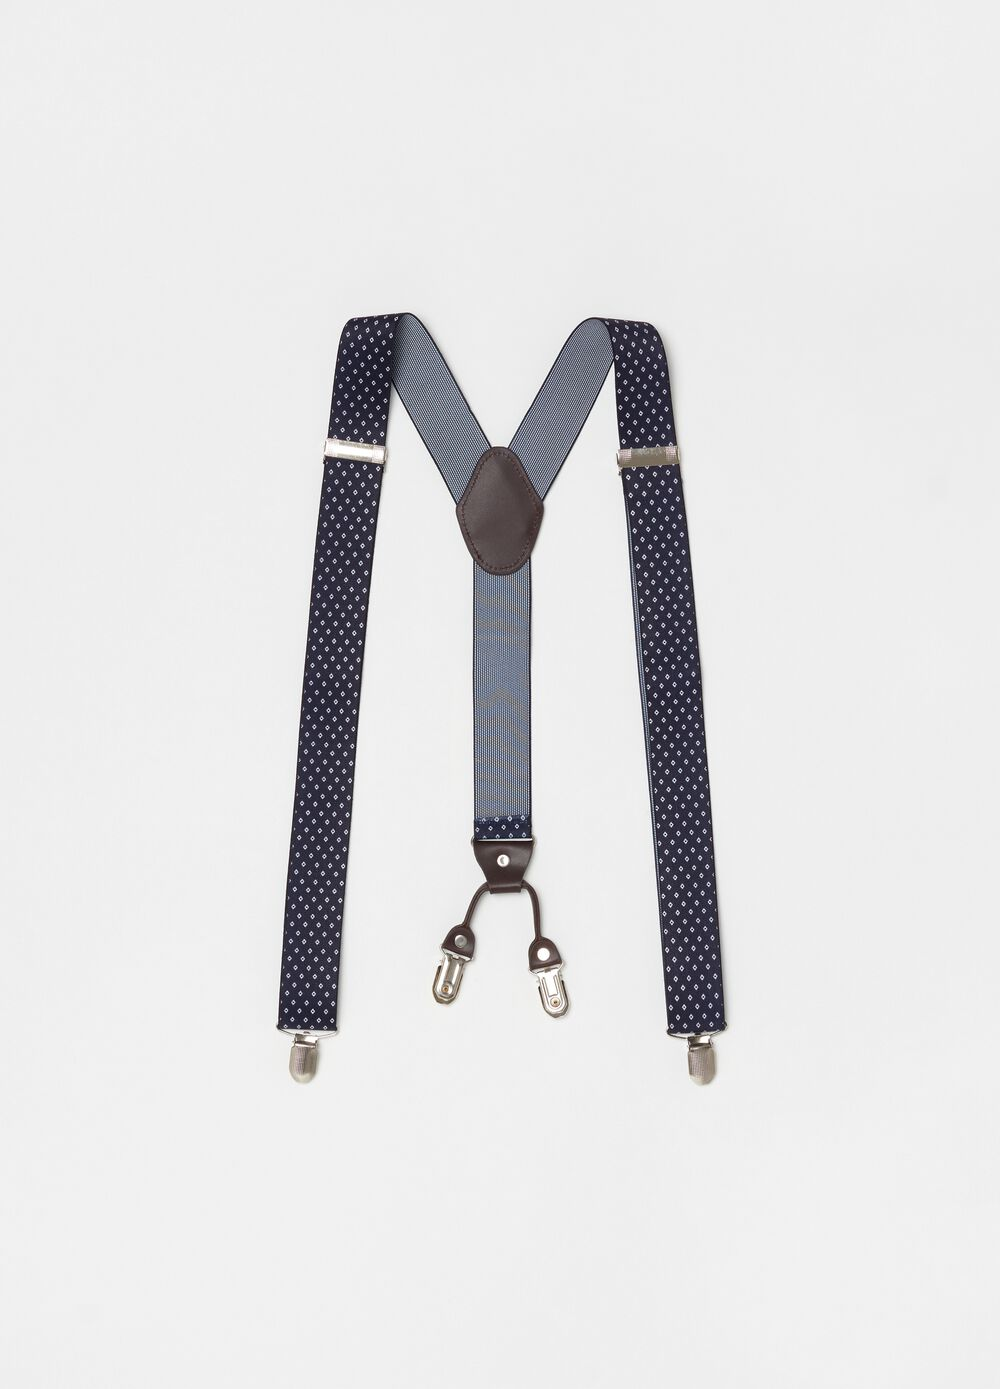 Thin patterned braces